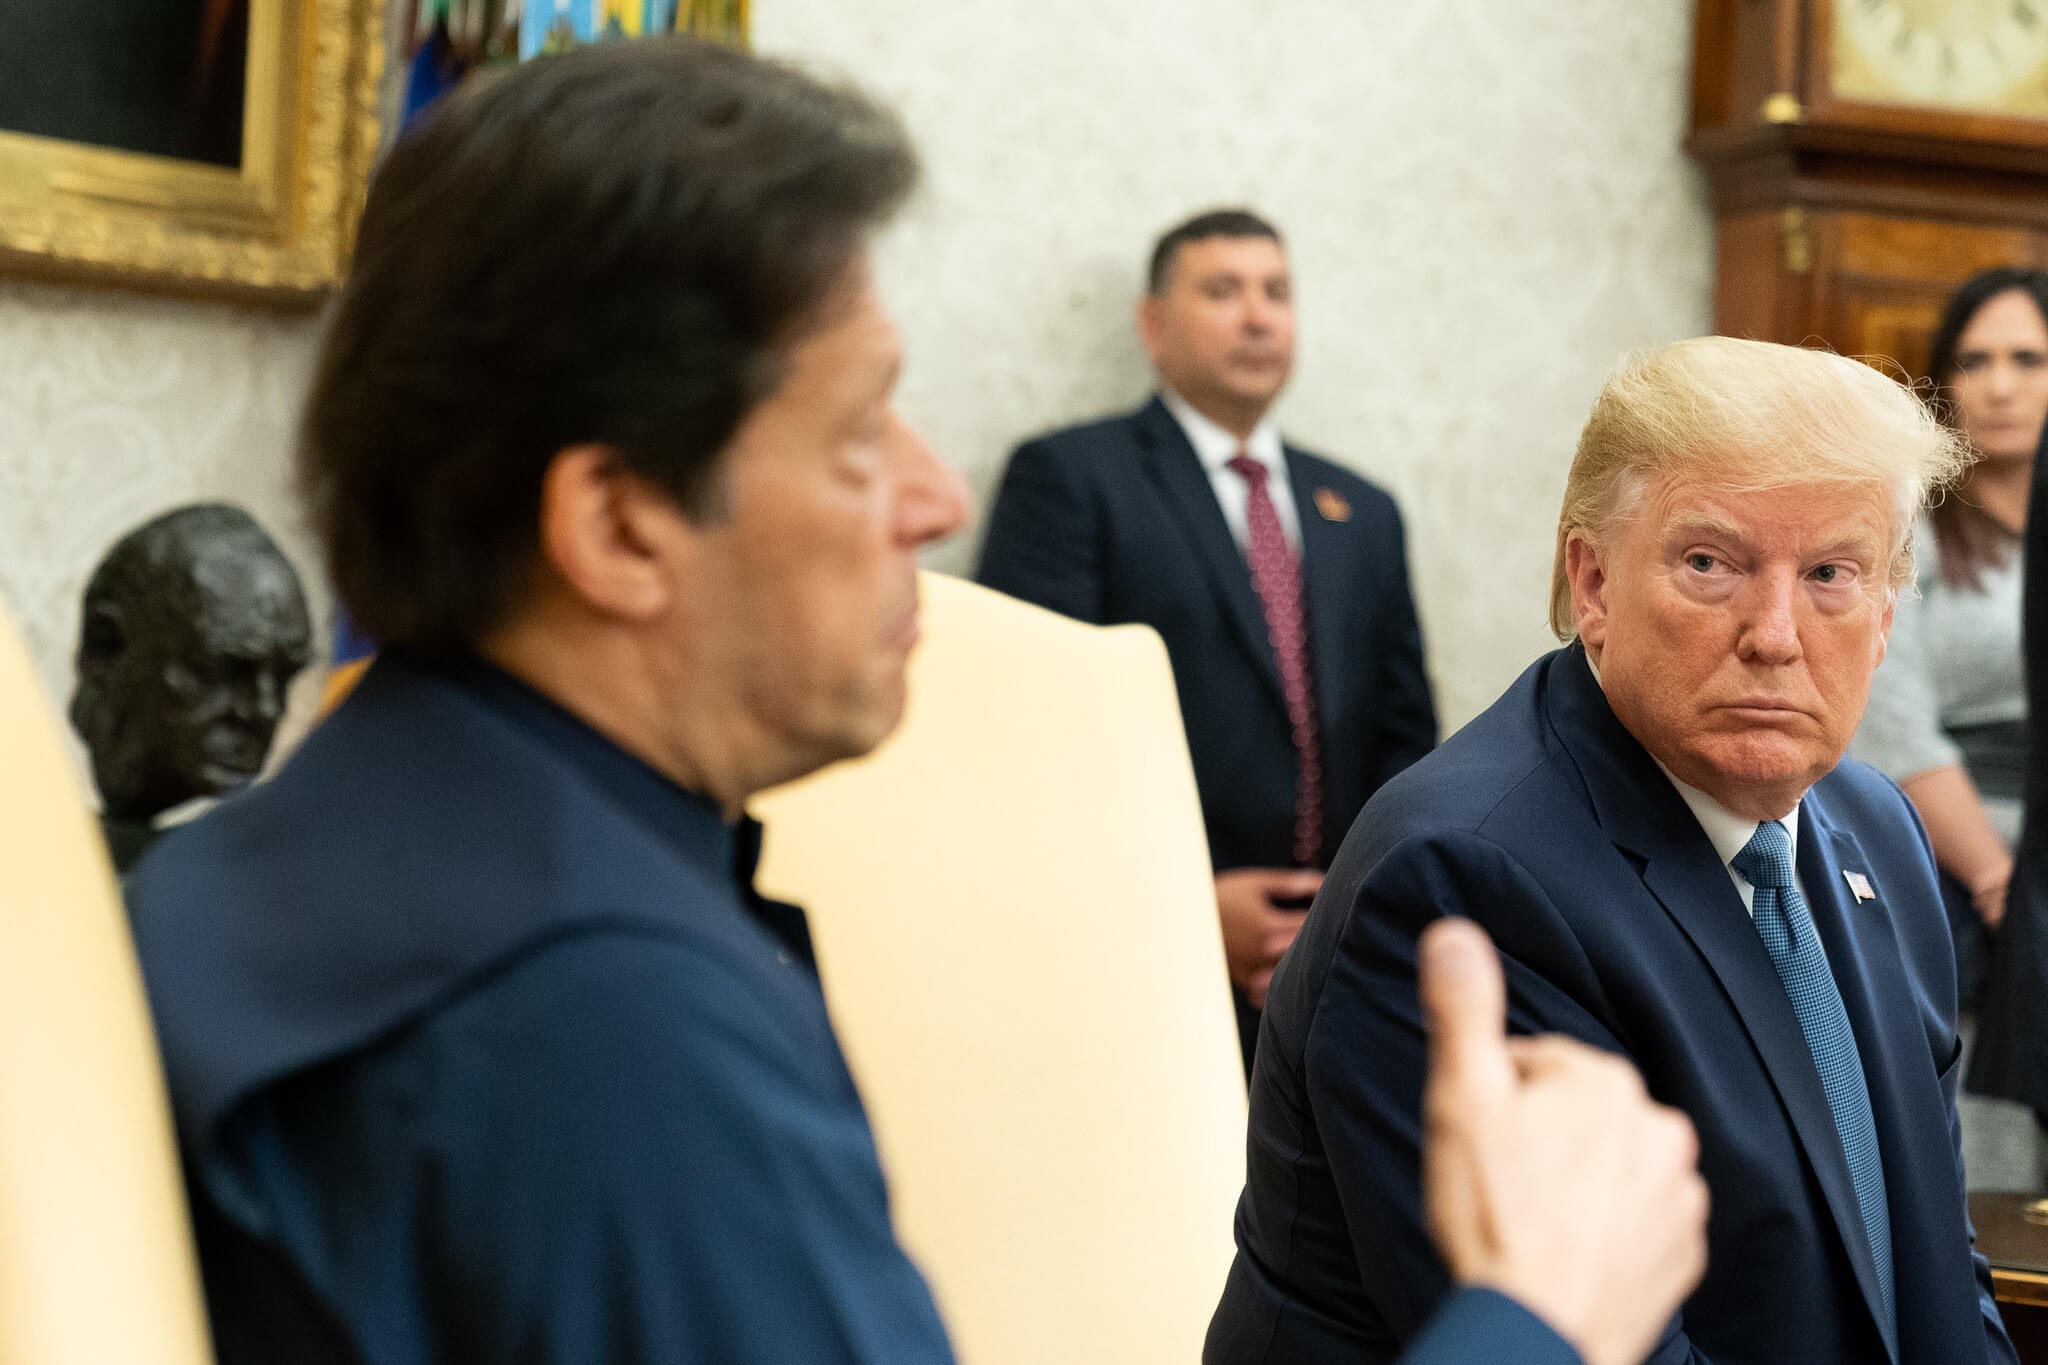 President Donald J. Trump, joined by Prime Minister Imran Khan of the Islamic Republic of Pakistan in July 2019. © Official White House Photo